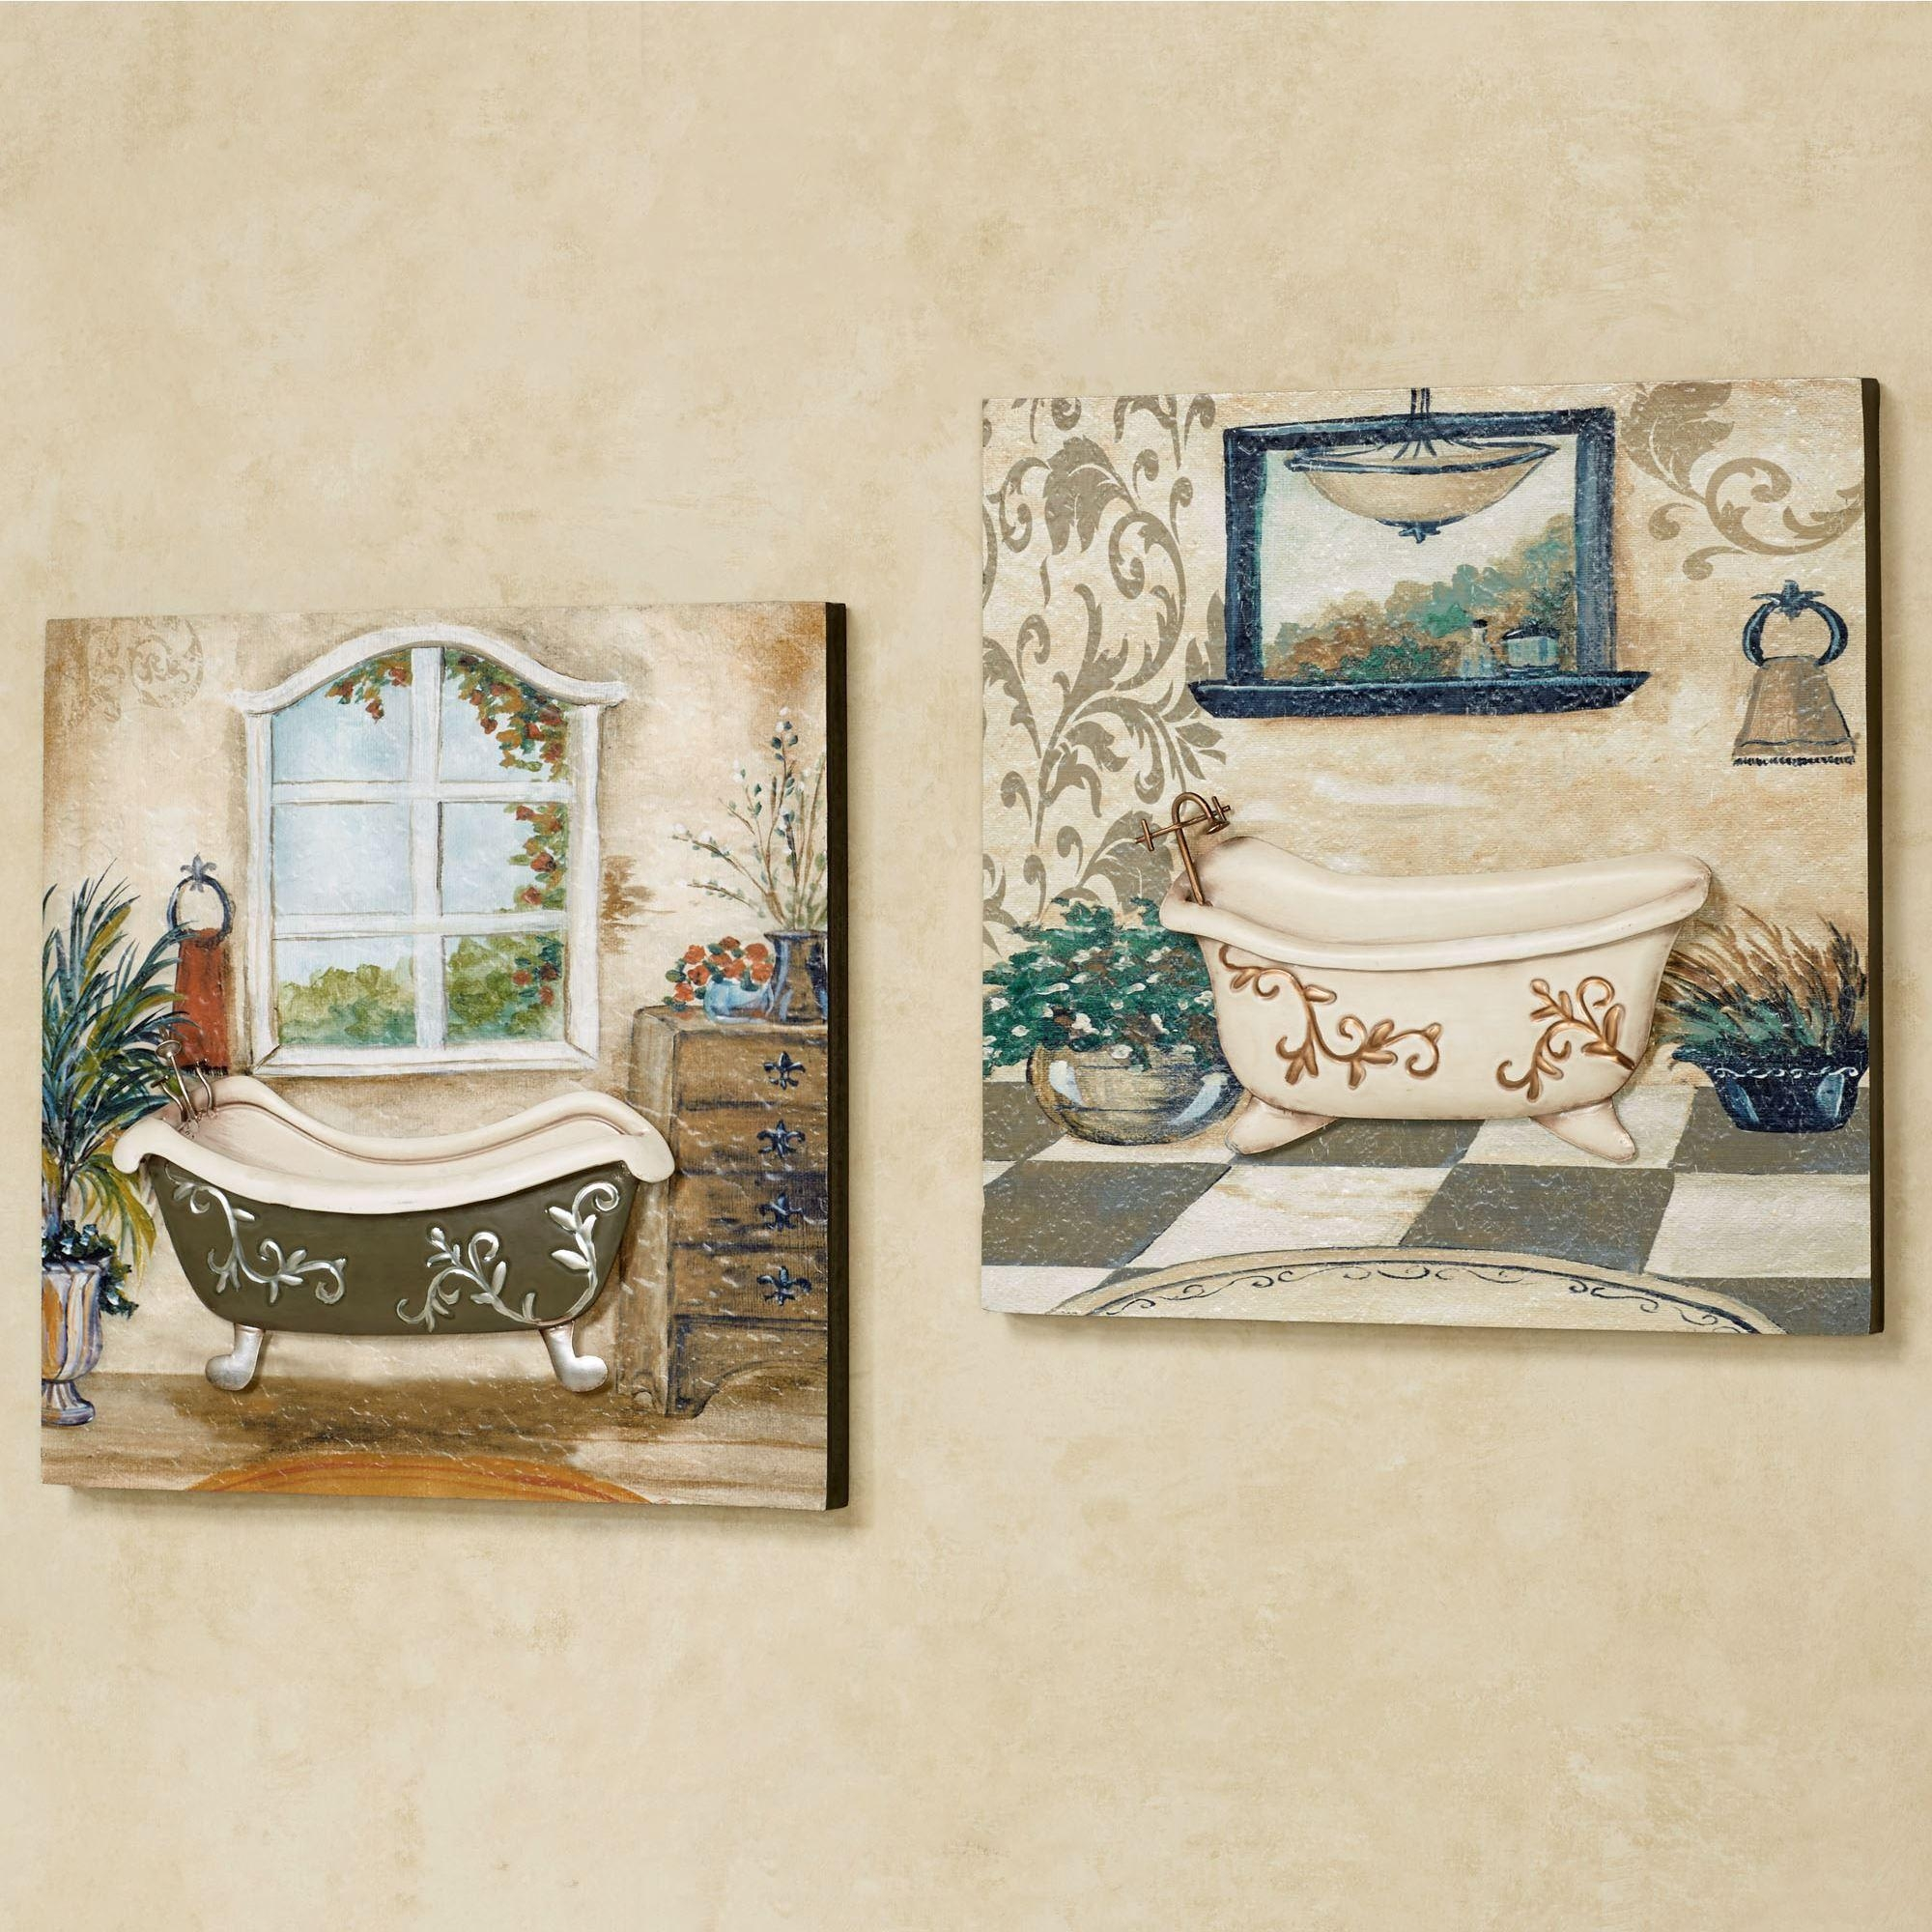 Italian Bathroom Wall Decor : Brightpulse Regarding Italian Wall Art For Bathroom (View 4 of 20)